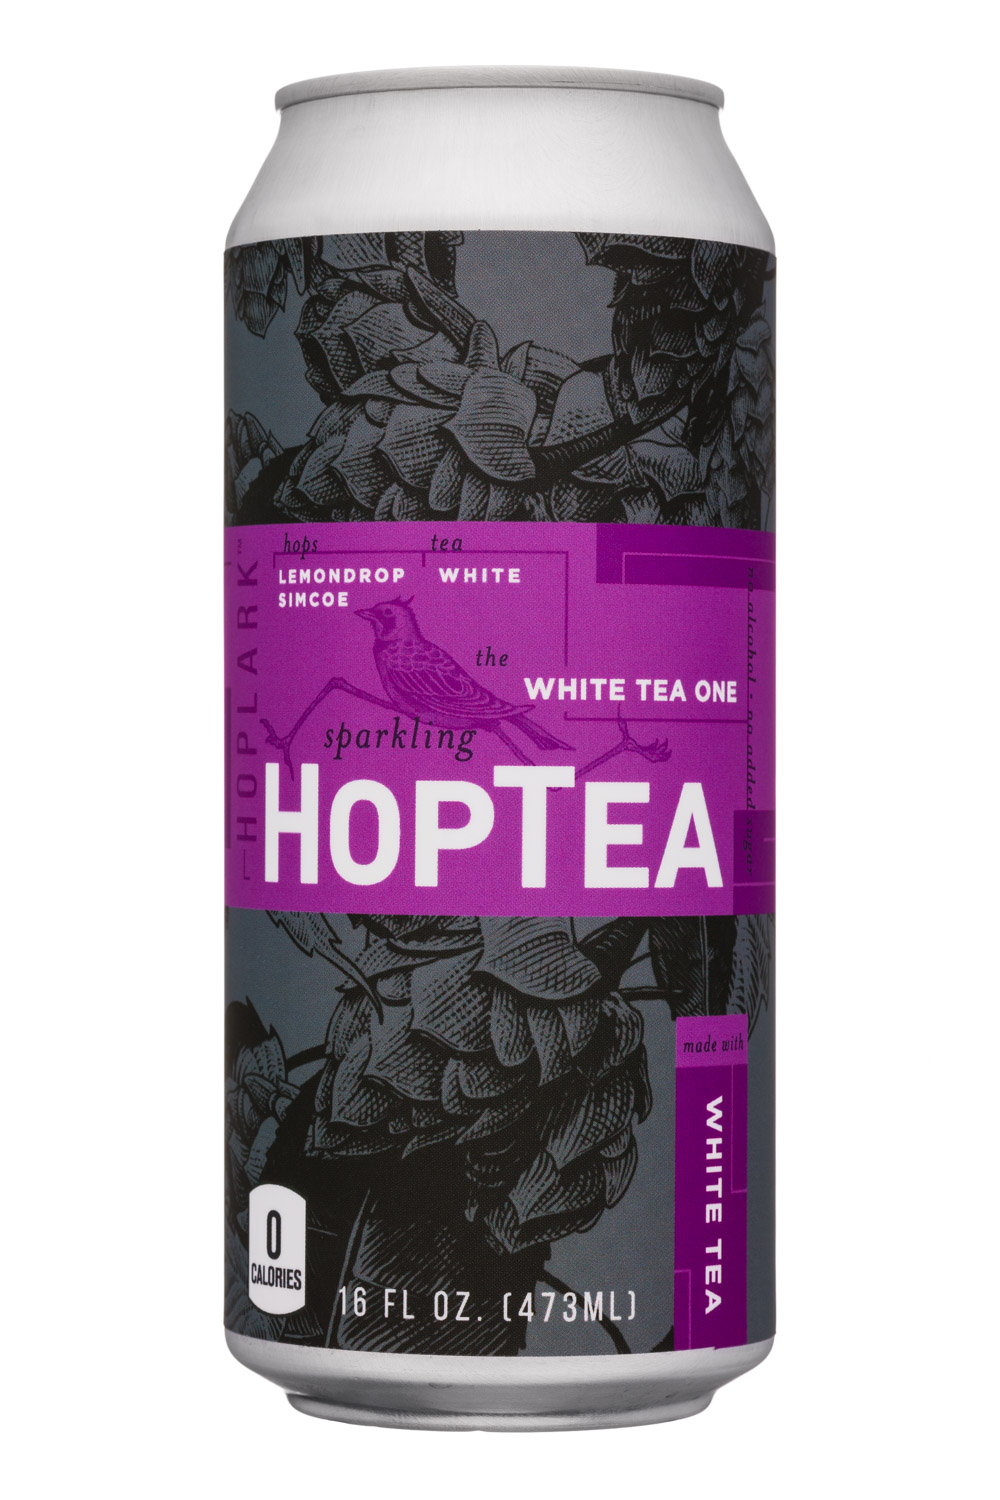 The White Tea One